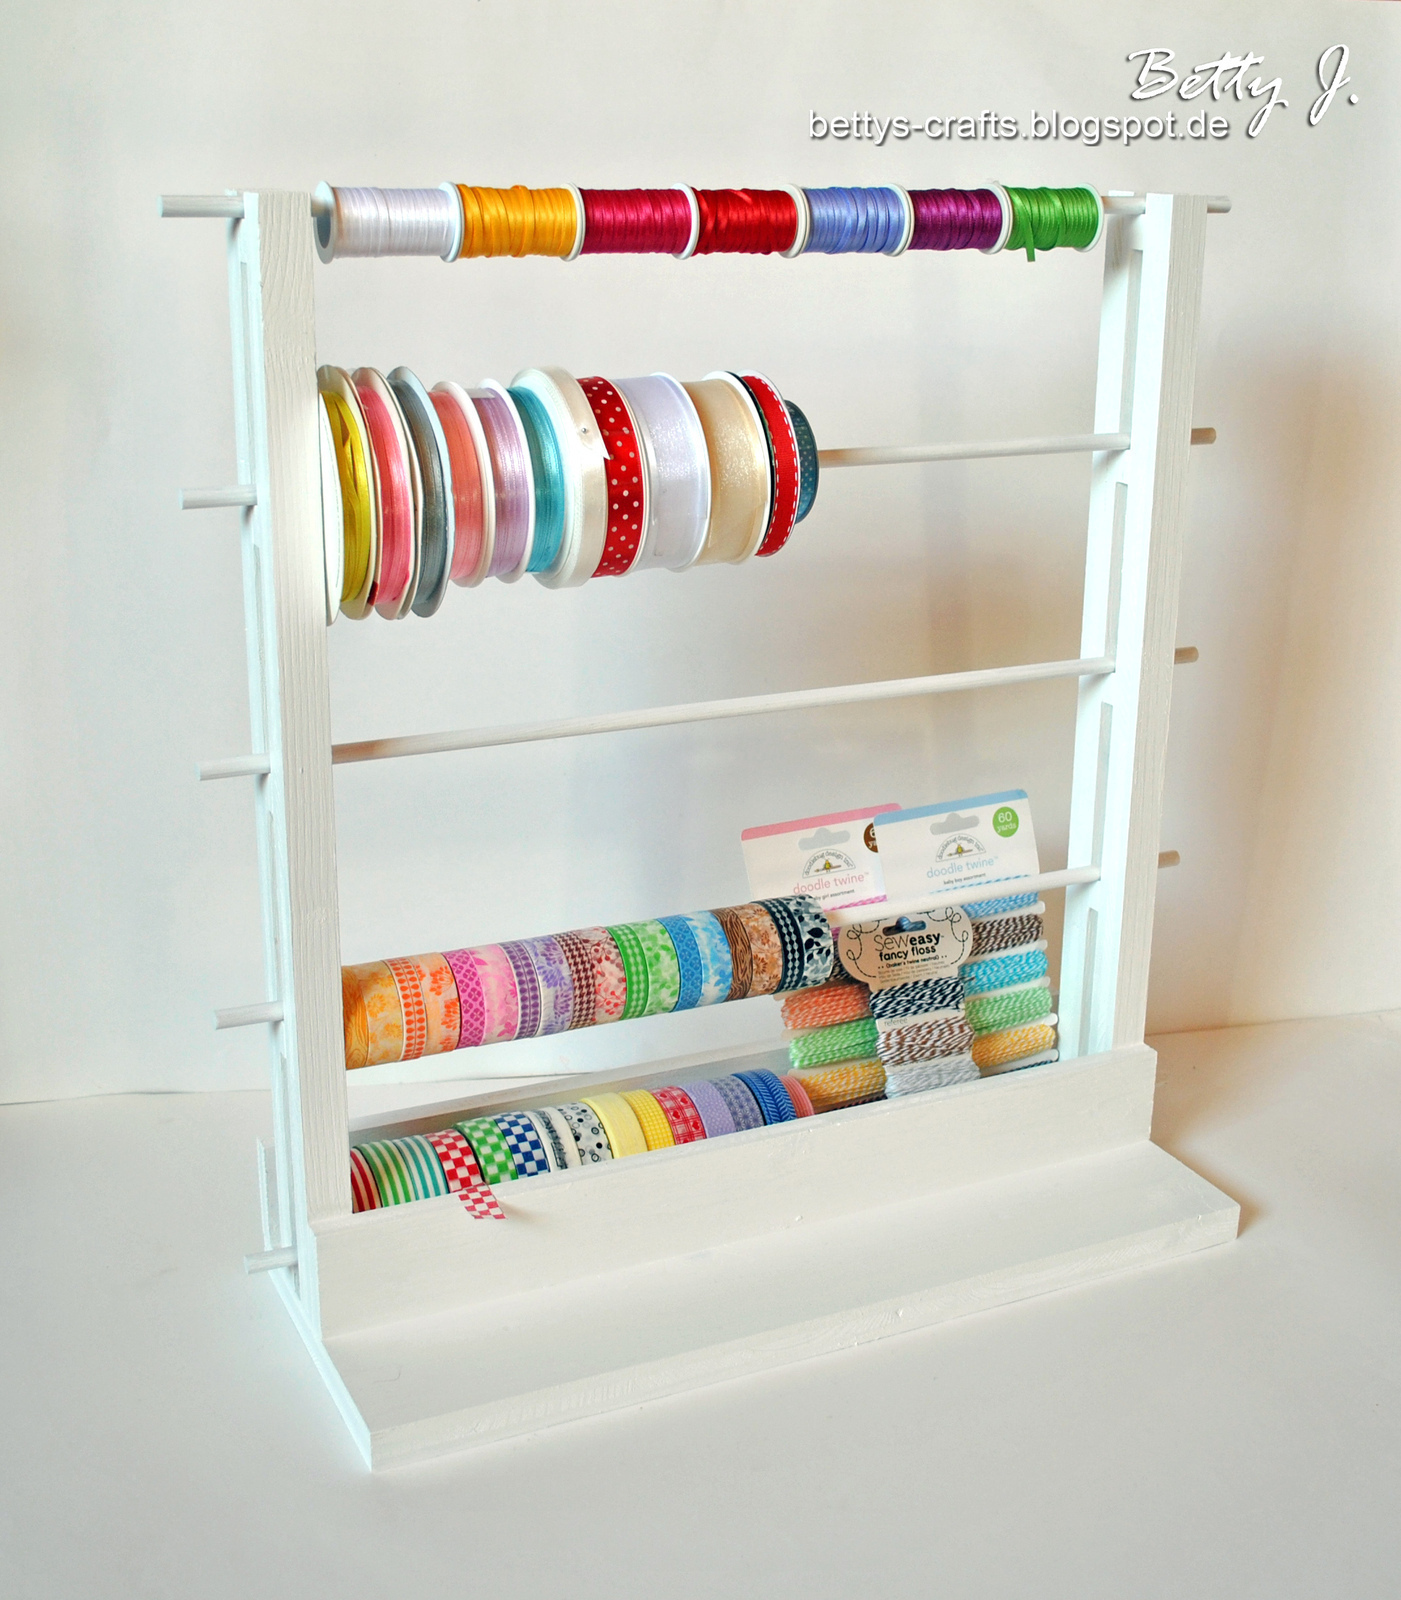 Washi Tape Diy Diy Storage For Ribbons And Washi Tapes How To Make A